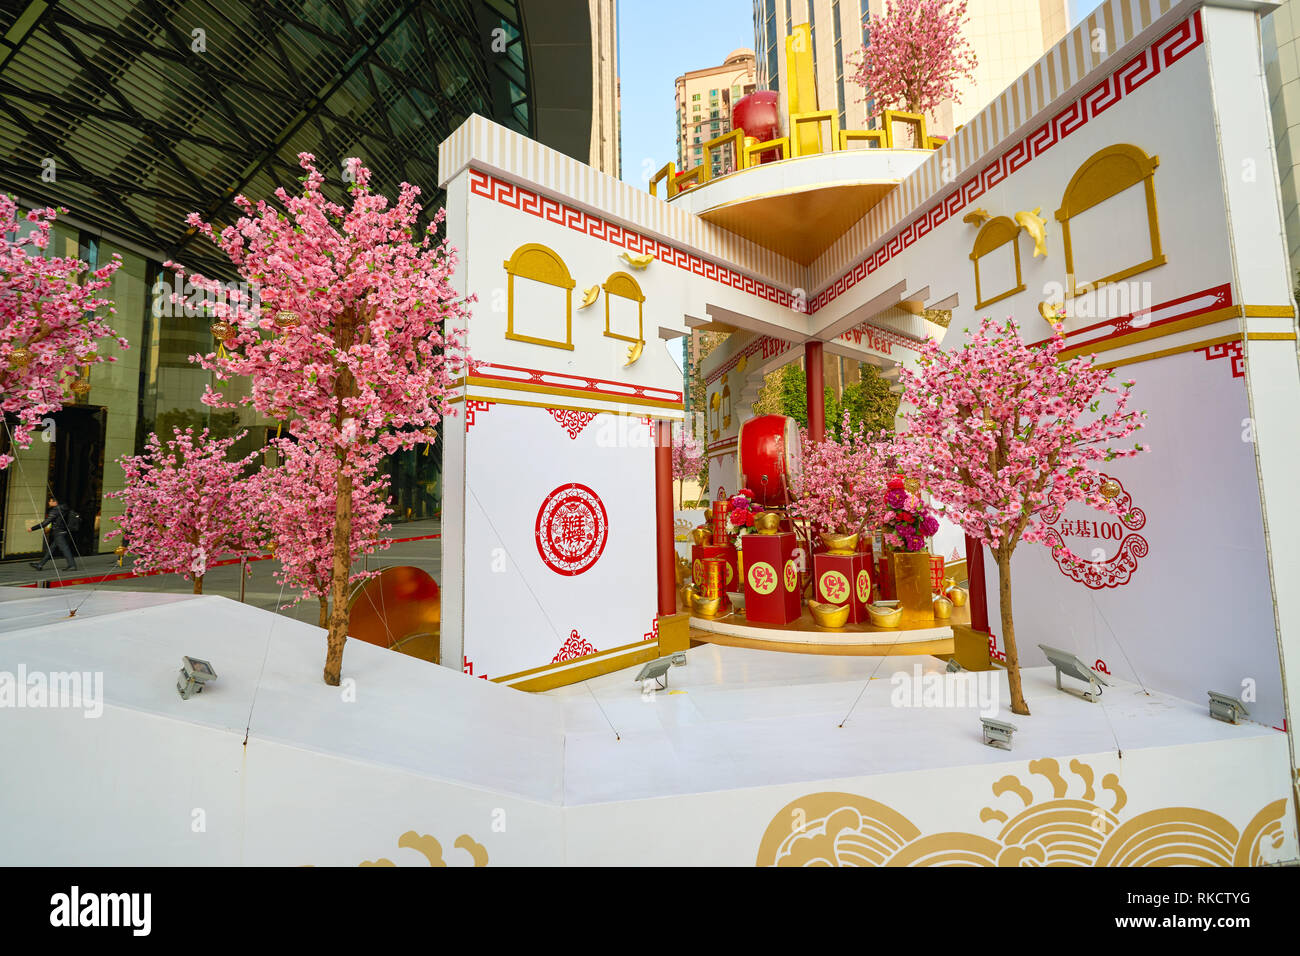 SHENZHEN, CHINA - FEBRUARY 05, 2016: Chinese New Year decorations near KK100. The KK100 is a supertall skyscraper in Shenzhen, Guangdong province, Chi - Stock Image